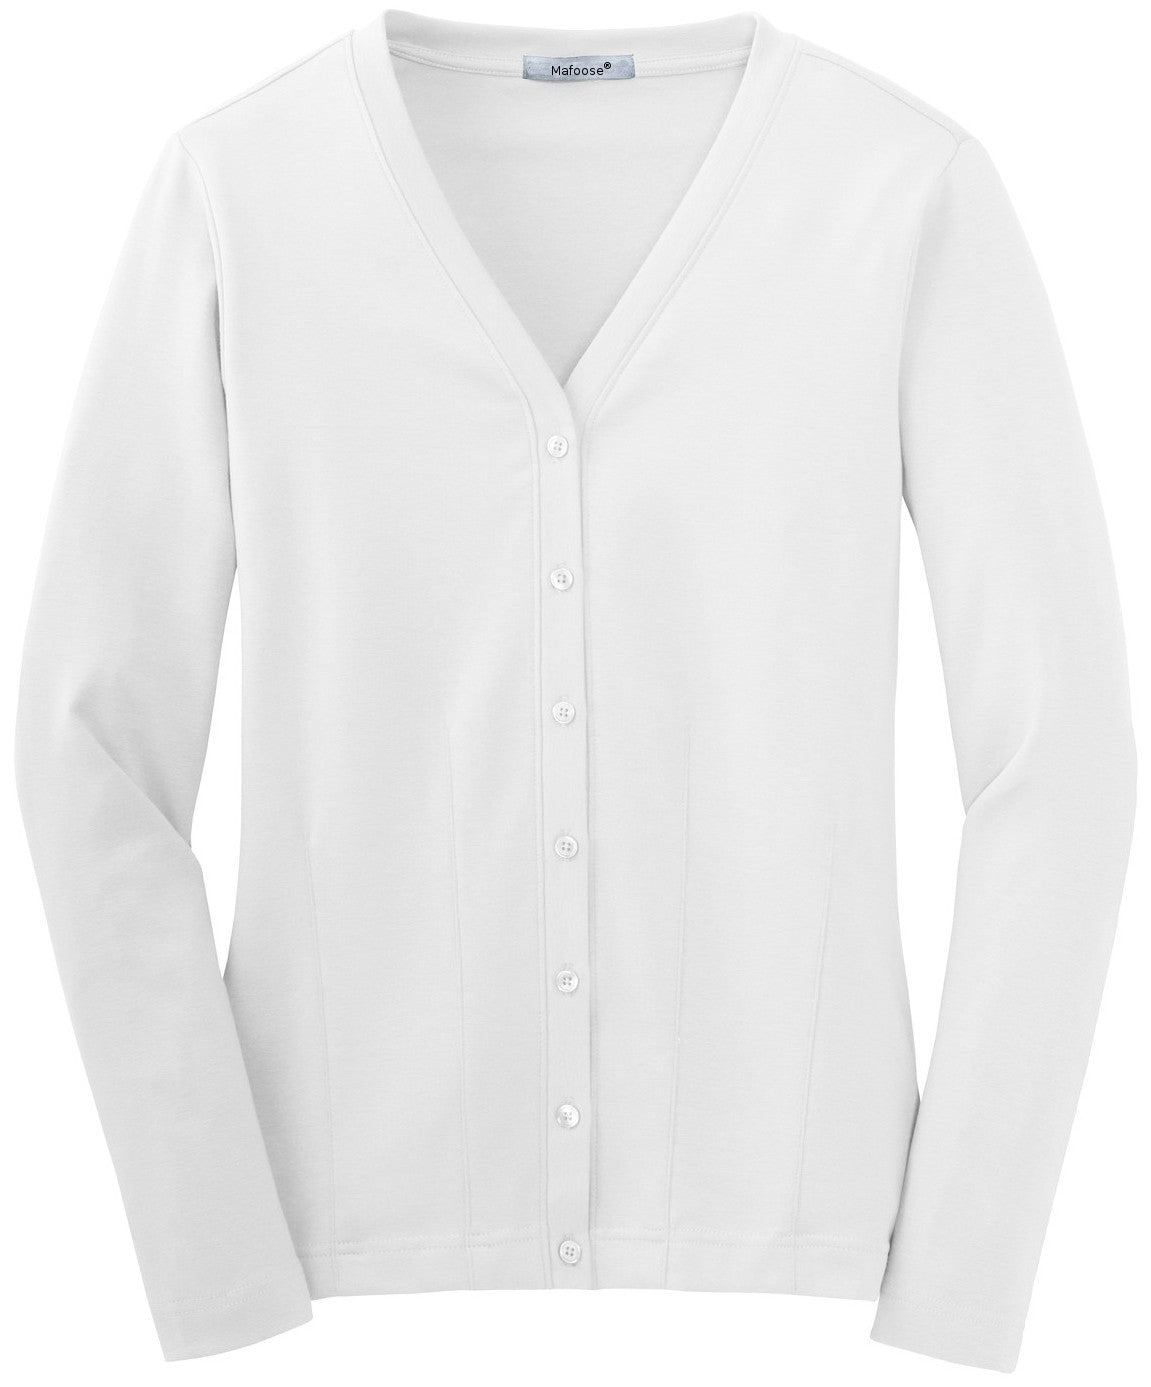 Mafoose Women's Stretch Cotton Cardigan White-Front